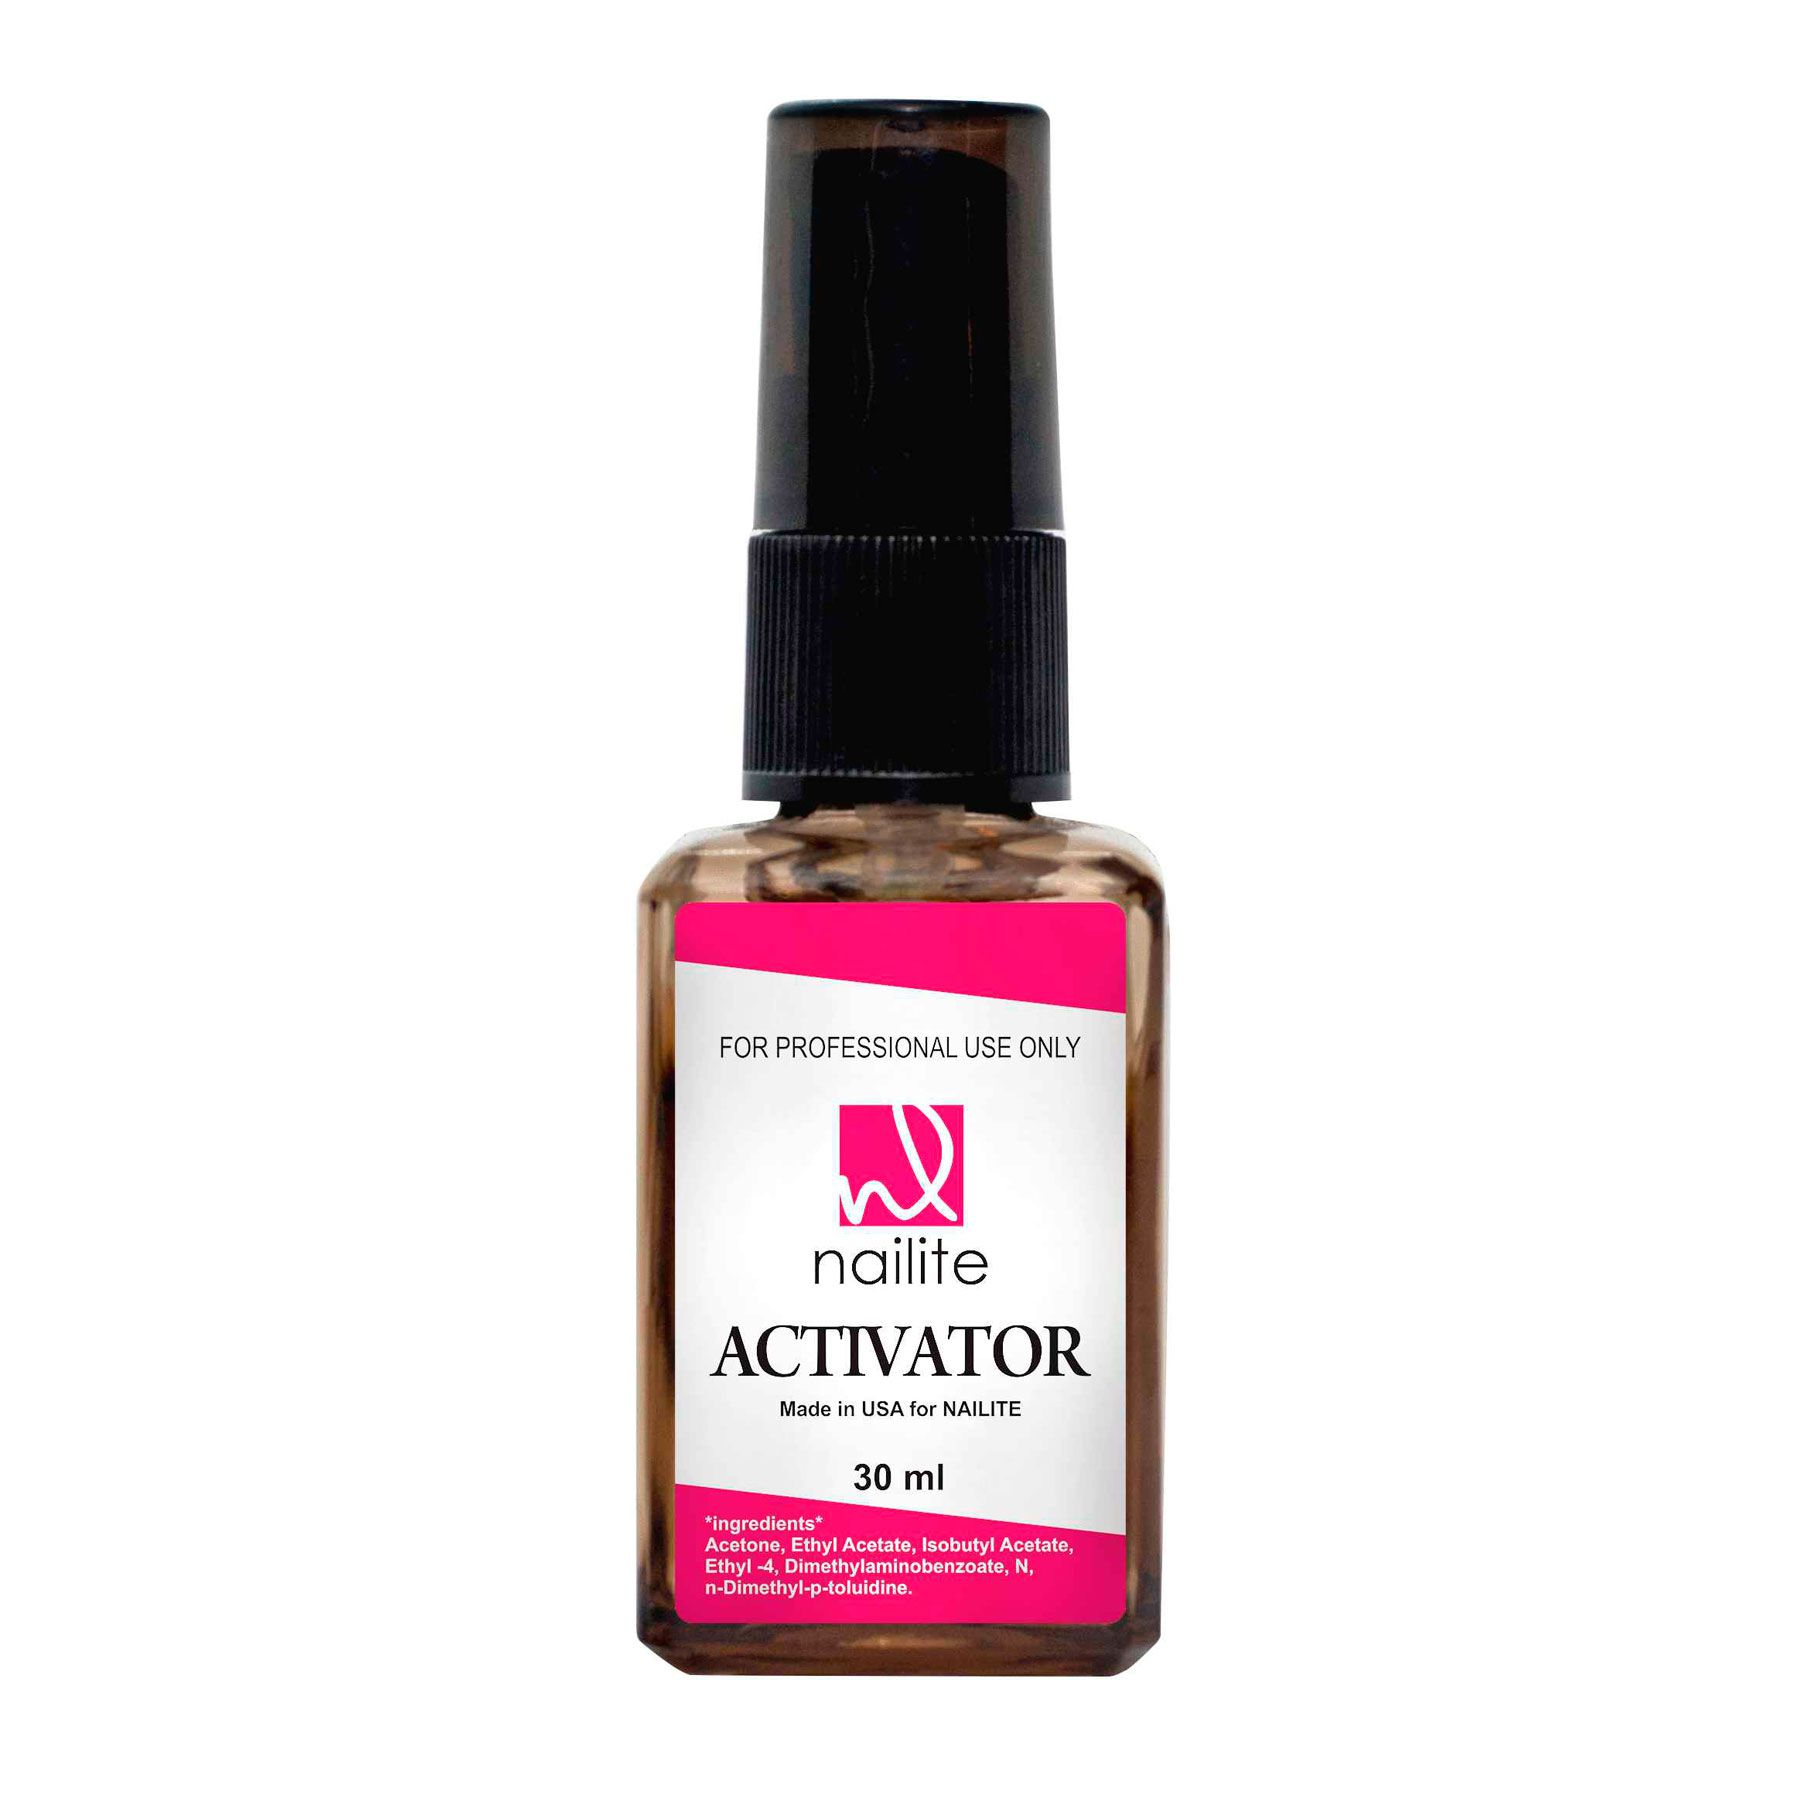 Liquido Activador Spray 30ml Nailite